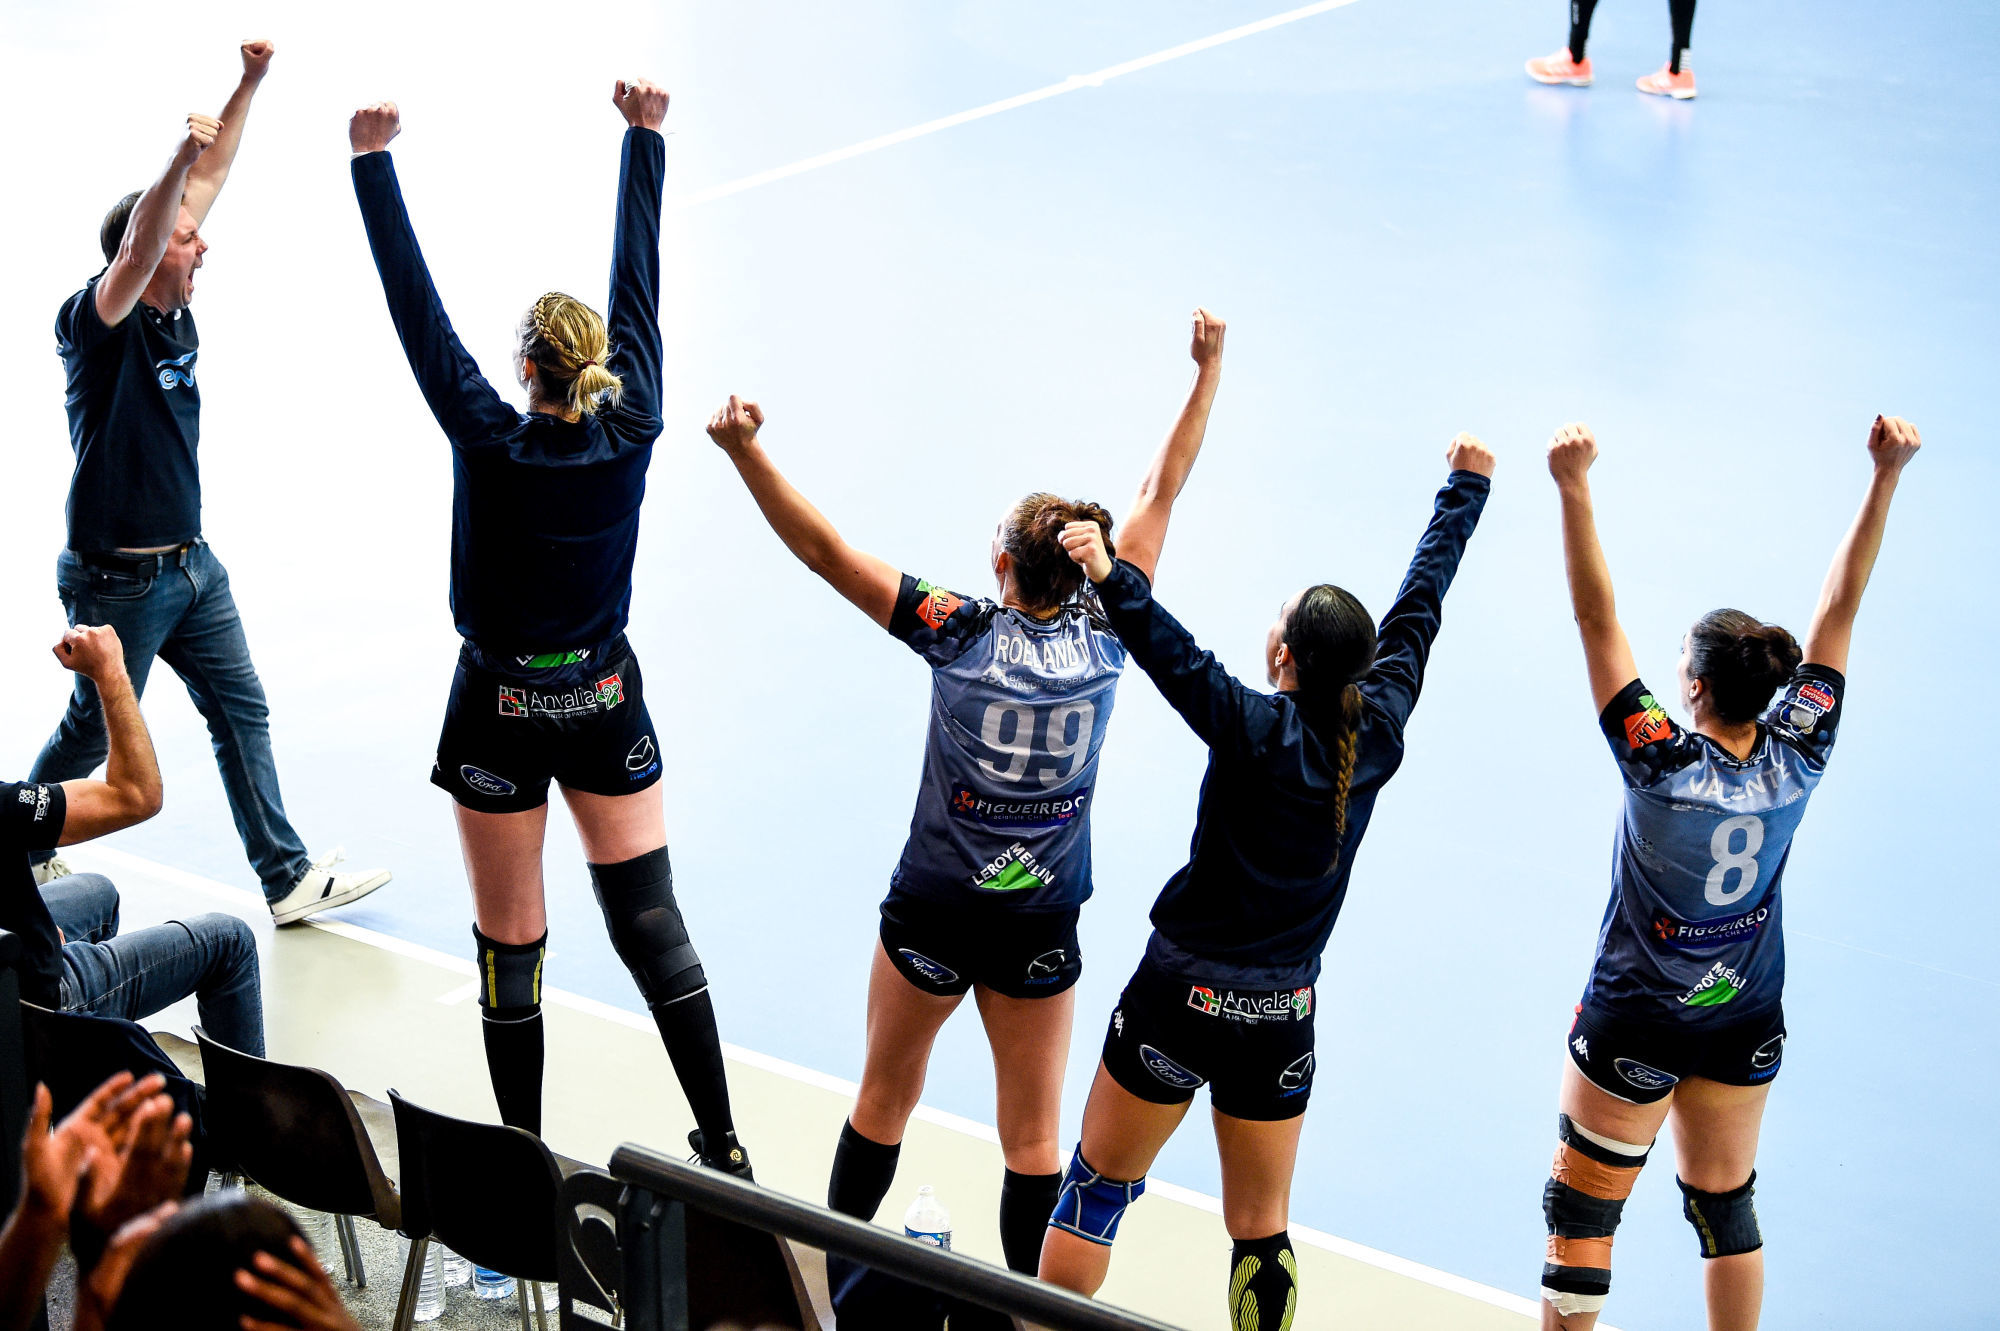 Head Coach Jerome DELARUE of CTHB, Szimonetta PLANETA of CTHB, Lea HEURE of CTHB, Julie SIAS of CTHB and Caroline  of CTHB celebrate during the Ligue Butagaz Energie match between Chambray and Paris 92 on May 8, 2021 in Chambray-les-Tours, France. (Photo by Hugo Pfeiffer/Icon Sport) - Gymnase de la Fontaine Blanche - Chambray-les-Tours (France)